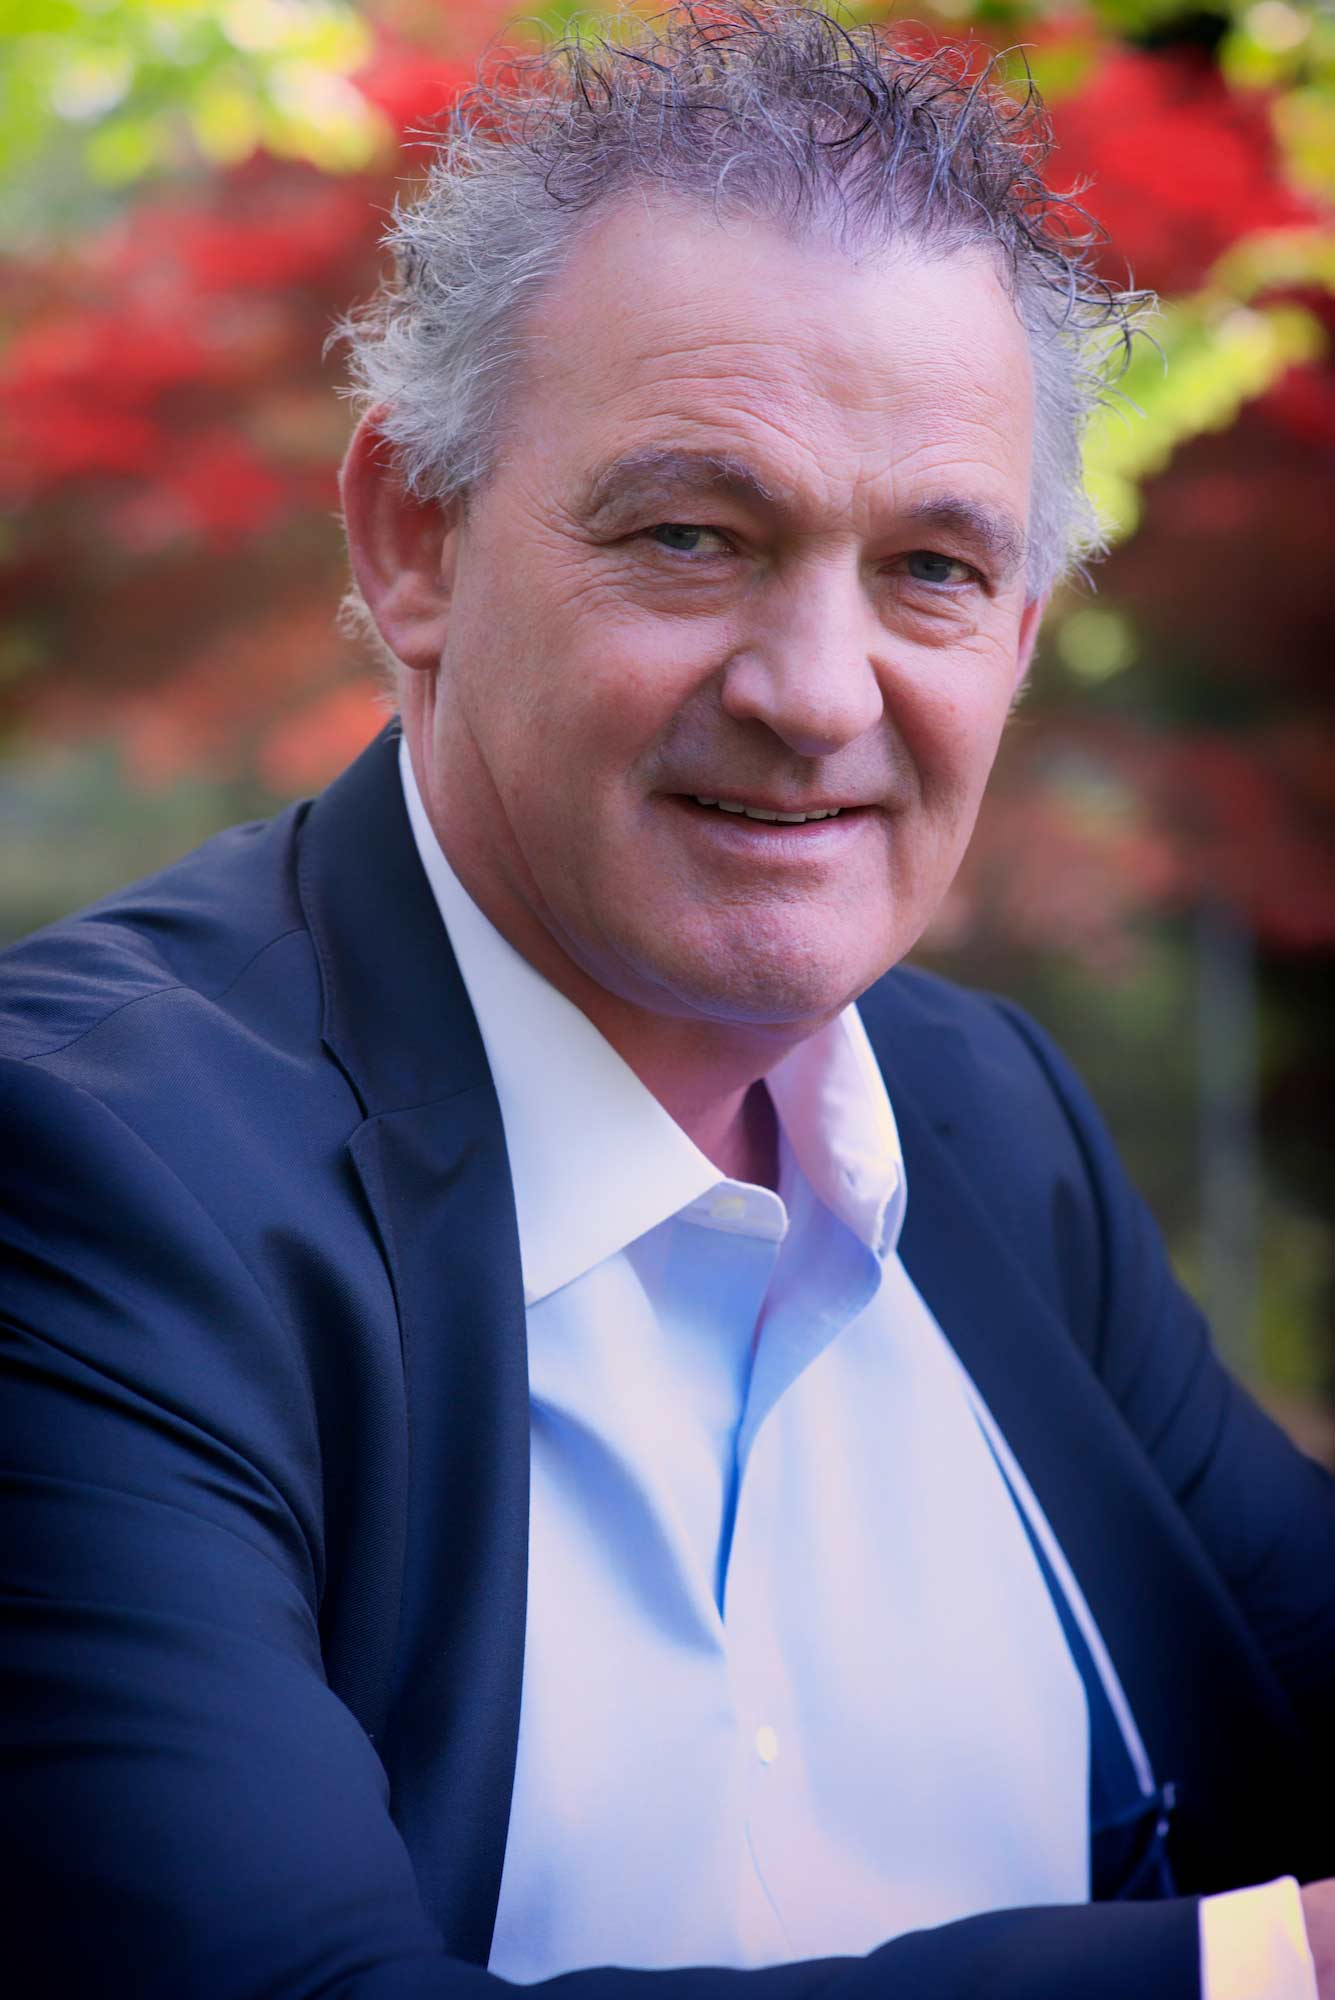 Candidates, Clowns and Ambition -- What Really Motivates Peter Casey?